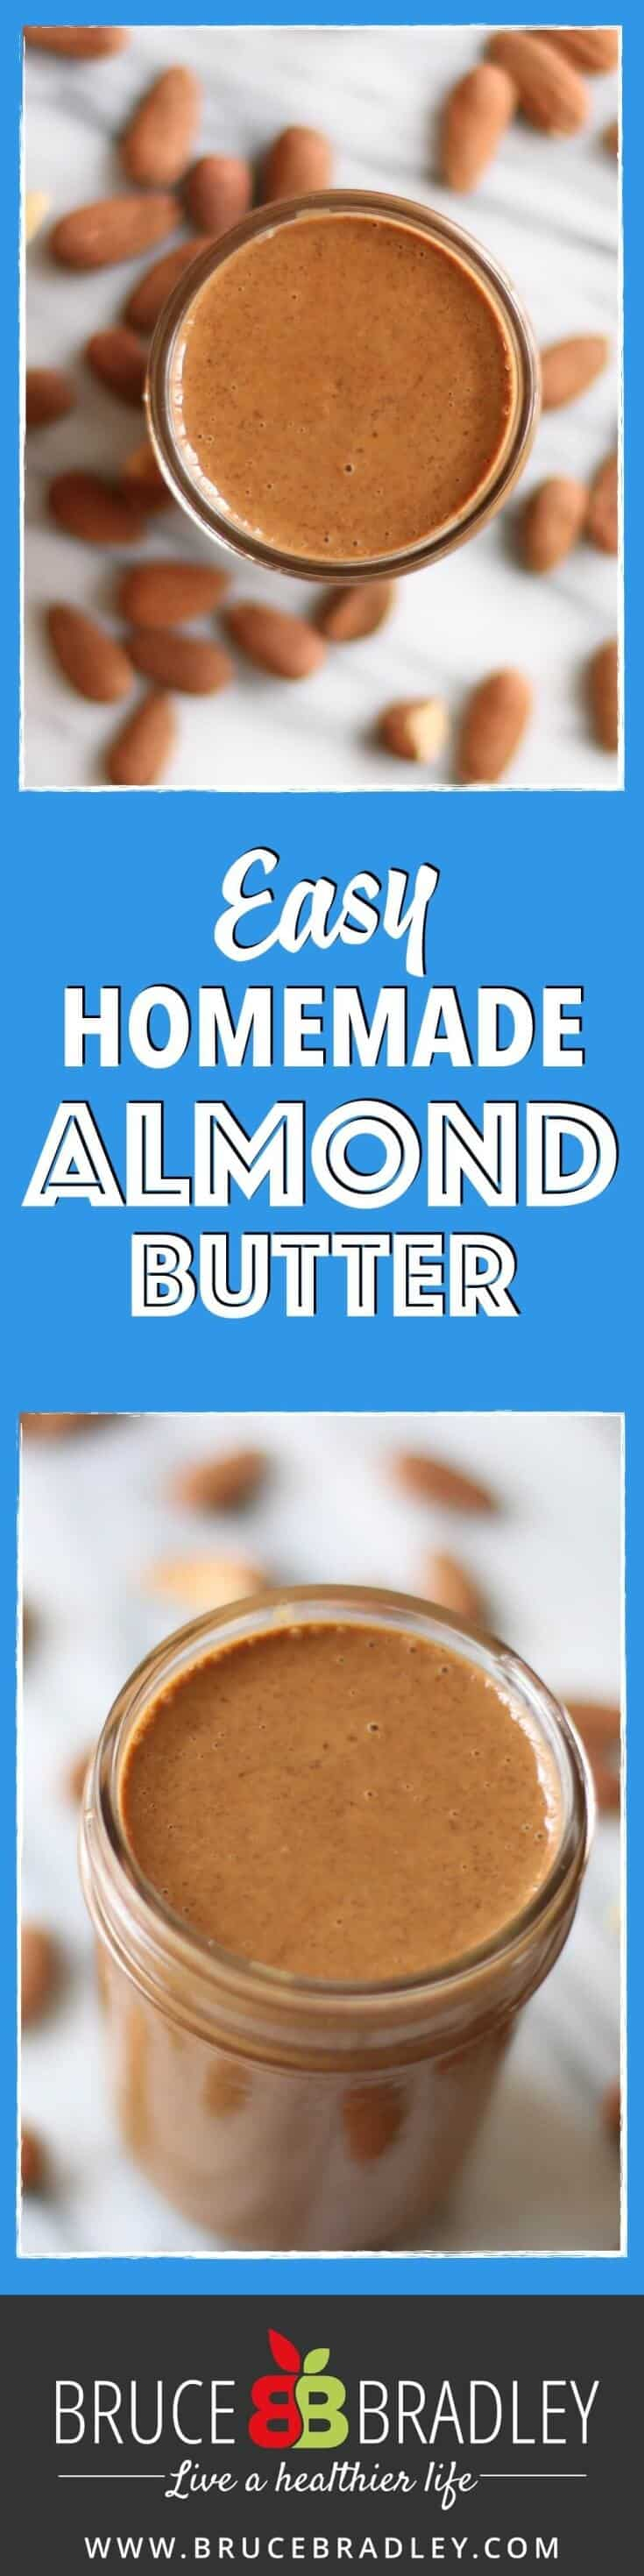 Homemade almond butter is a deliciously easy way to start eating healthier while saving some money!